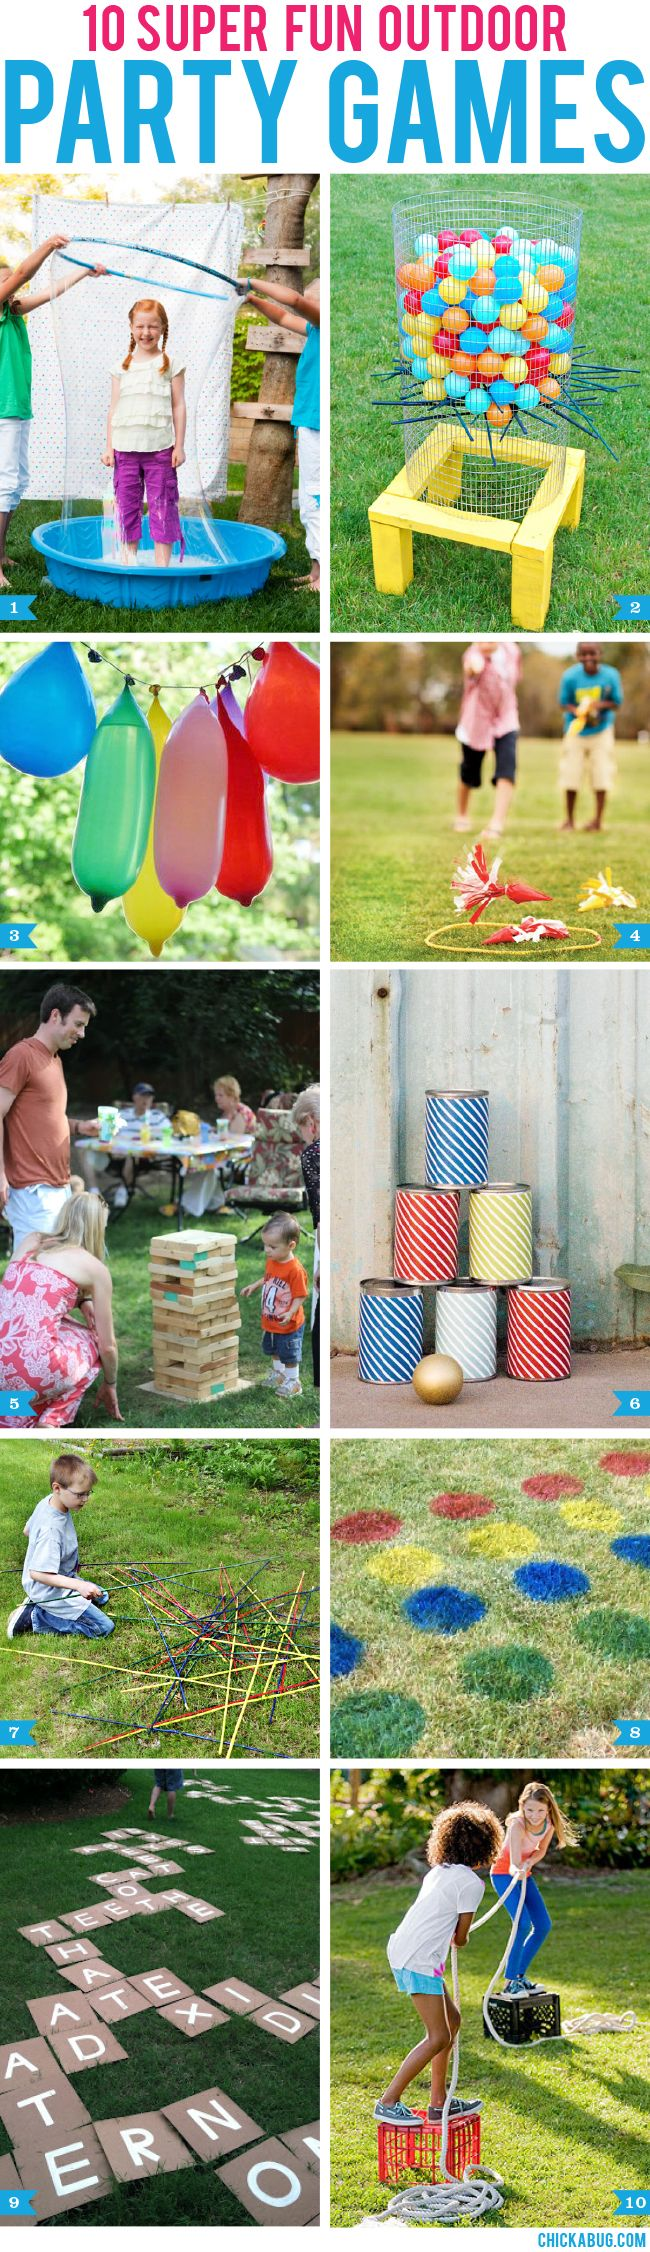 fun stuff for birthday parties ; d0a0e1334baead1ba9b00b872211ae53--outdoor-parties-outdoor-fun